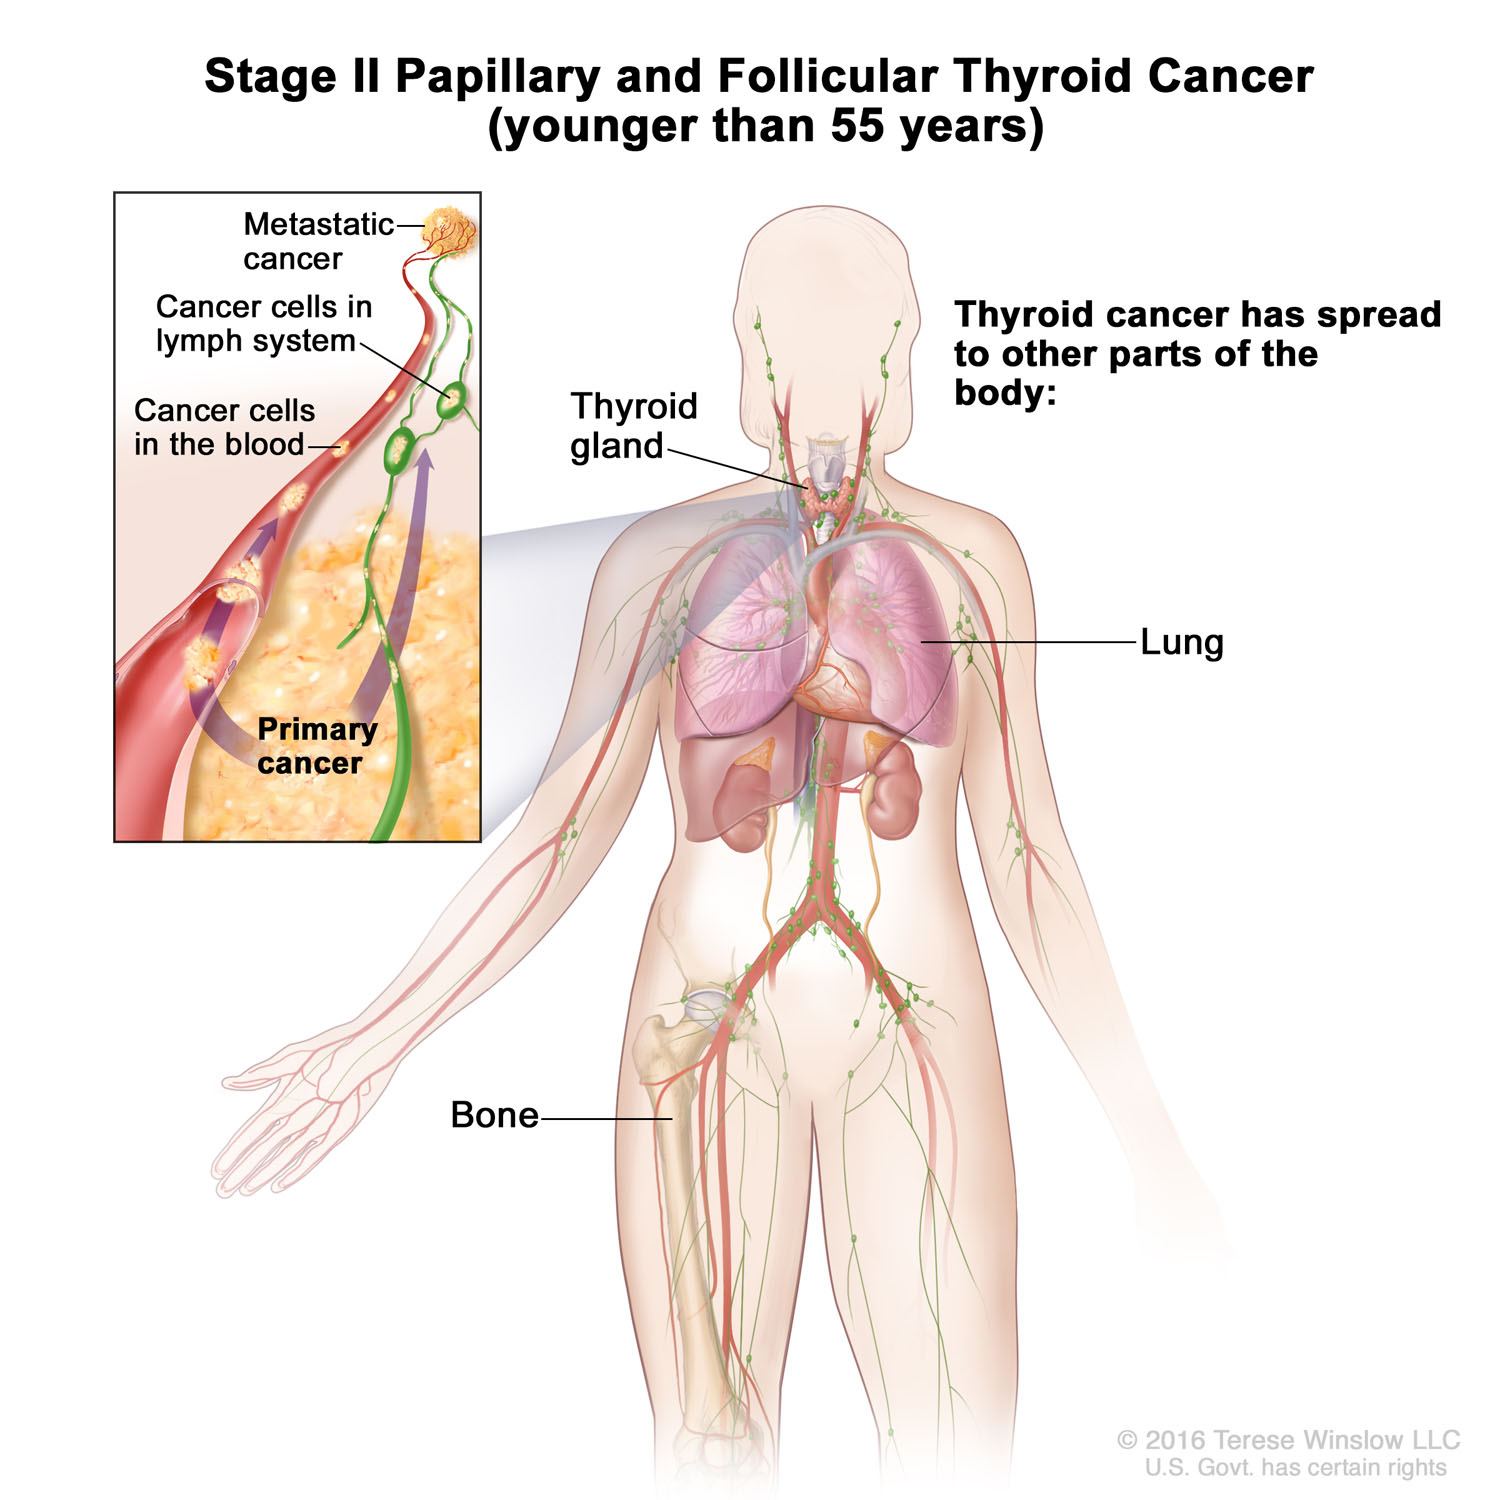 thyroid-cancer-papillary-follicular-stage2-younger55.jpg